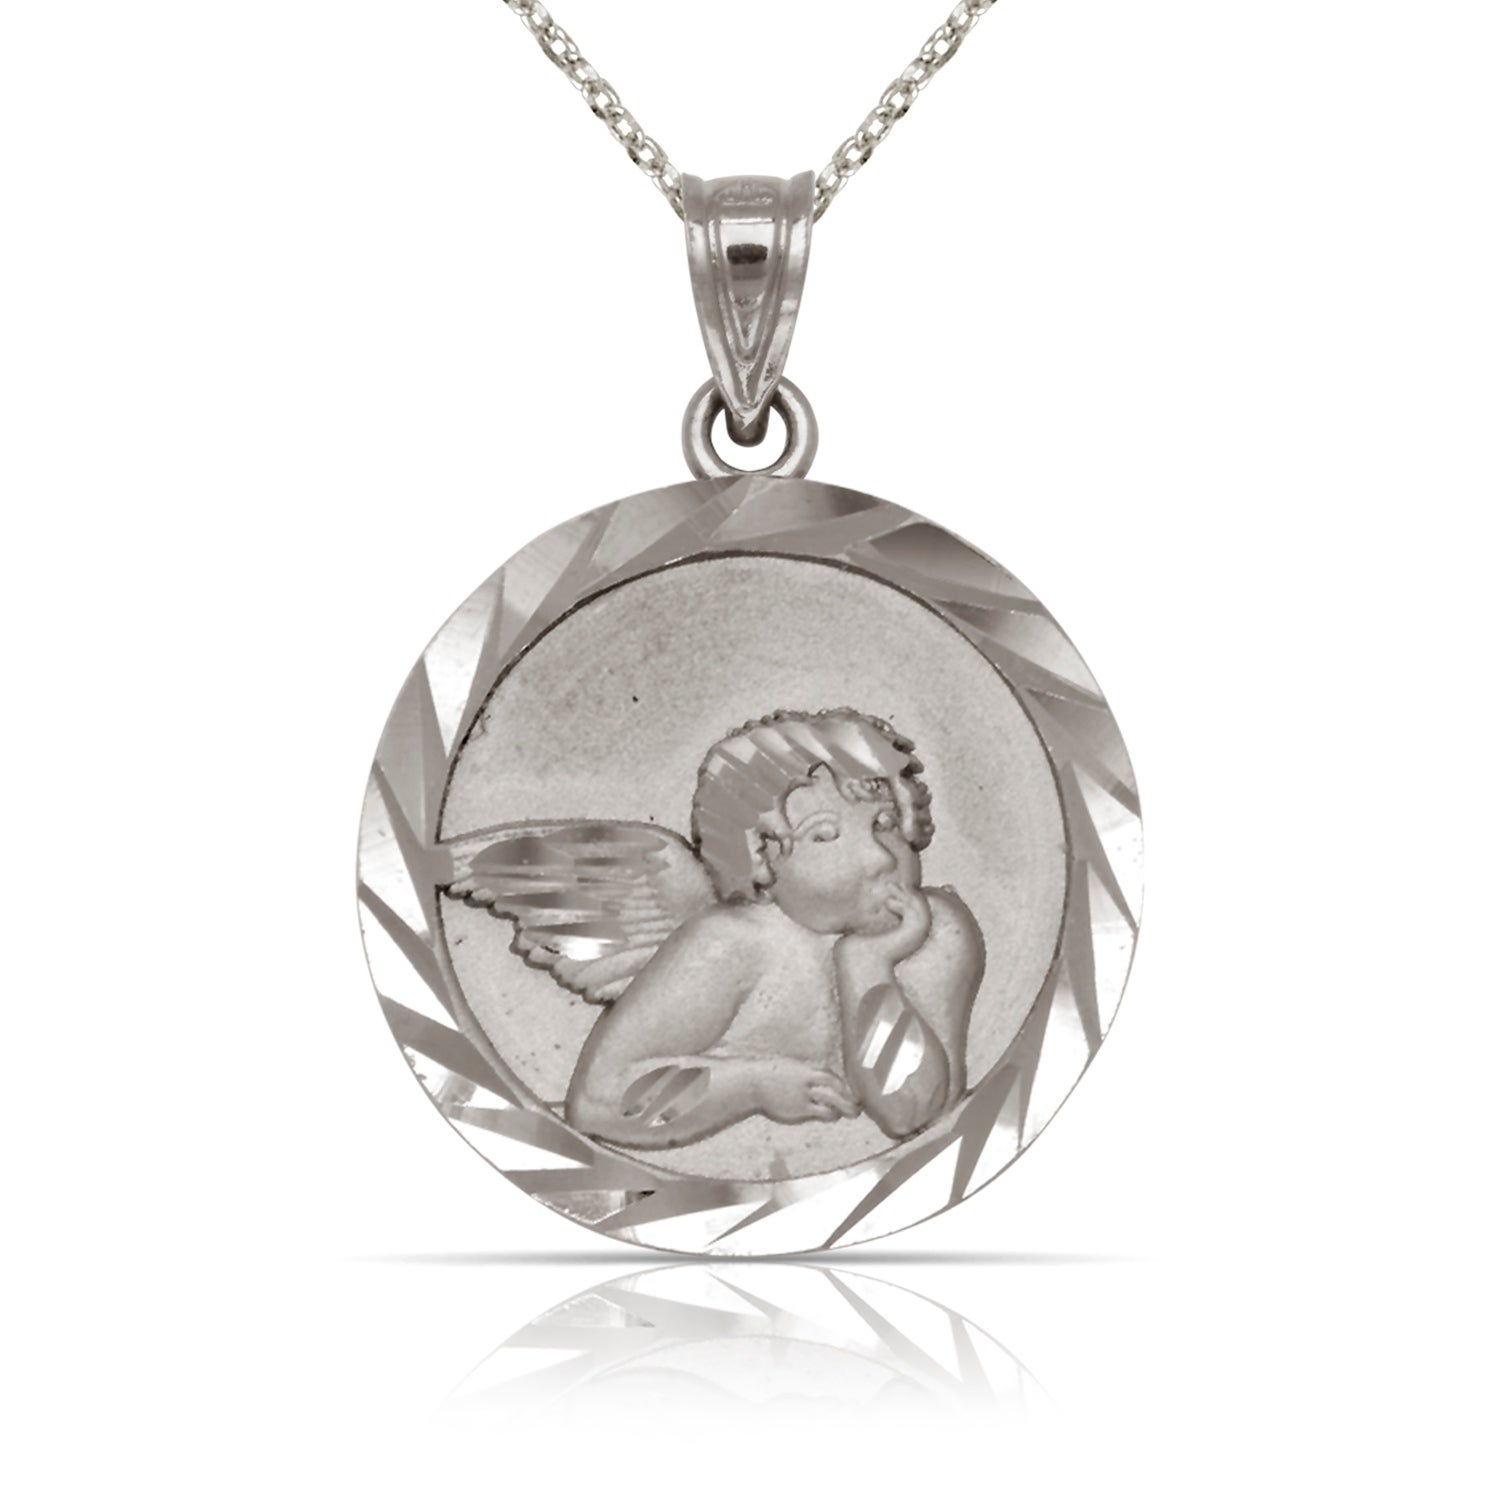 e018f0e054a Shop Solid 14K White Gold Small Satin Diamond-cut Round Guardian Angel  Medal Pendant Necklace (15mm x 21mm) (16